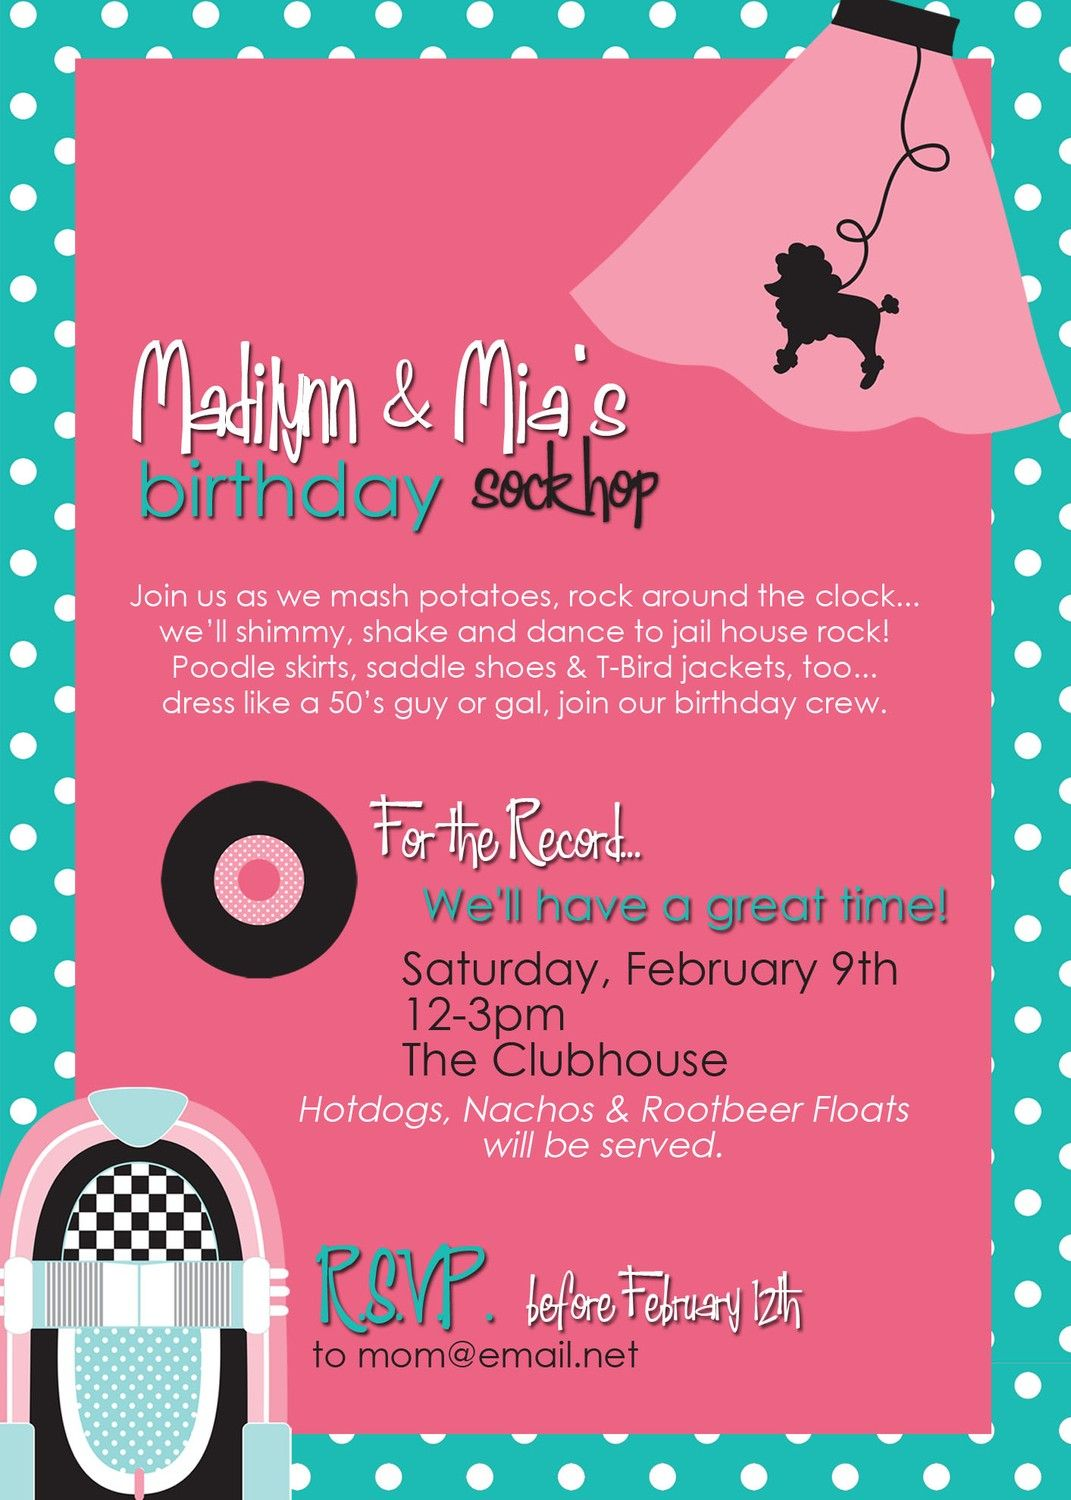 50s party invitation www.tablescapesbydesign.com https://www ...